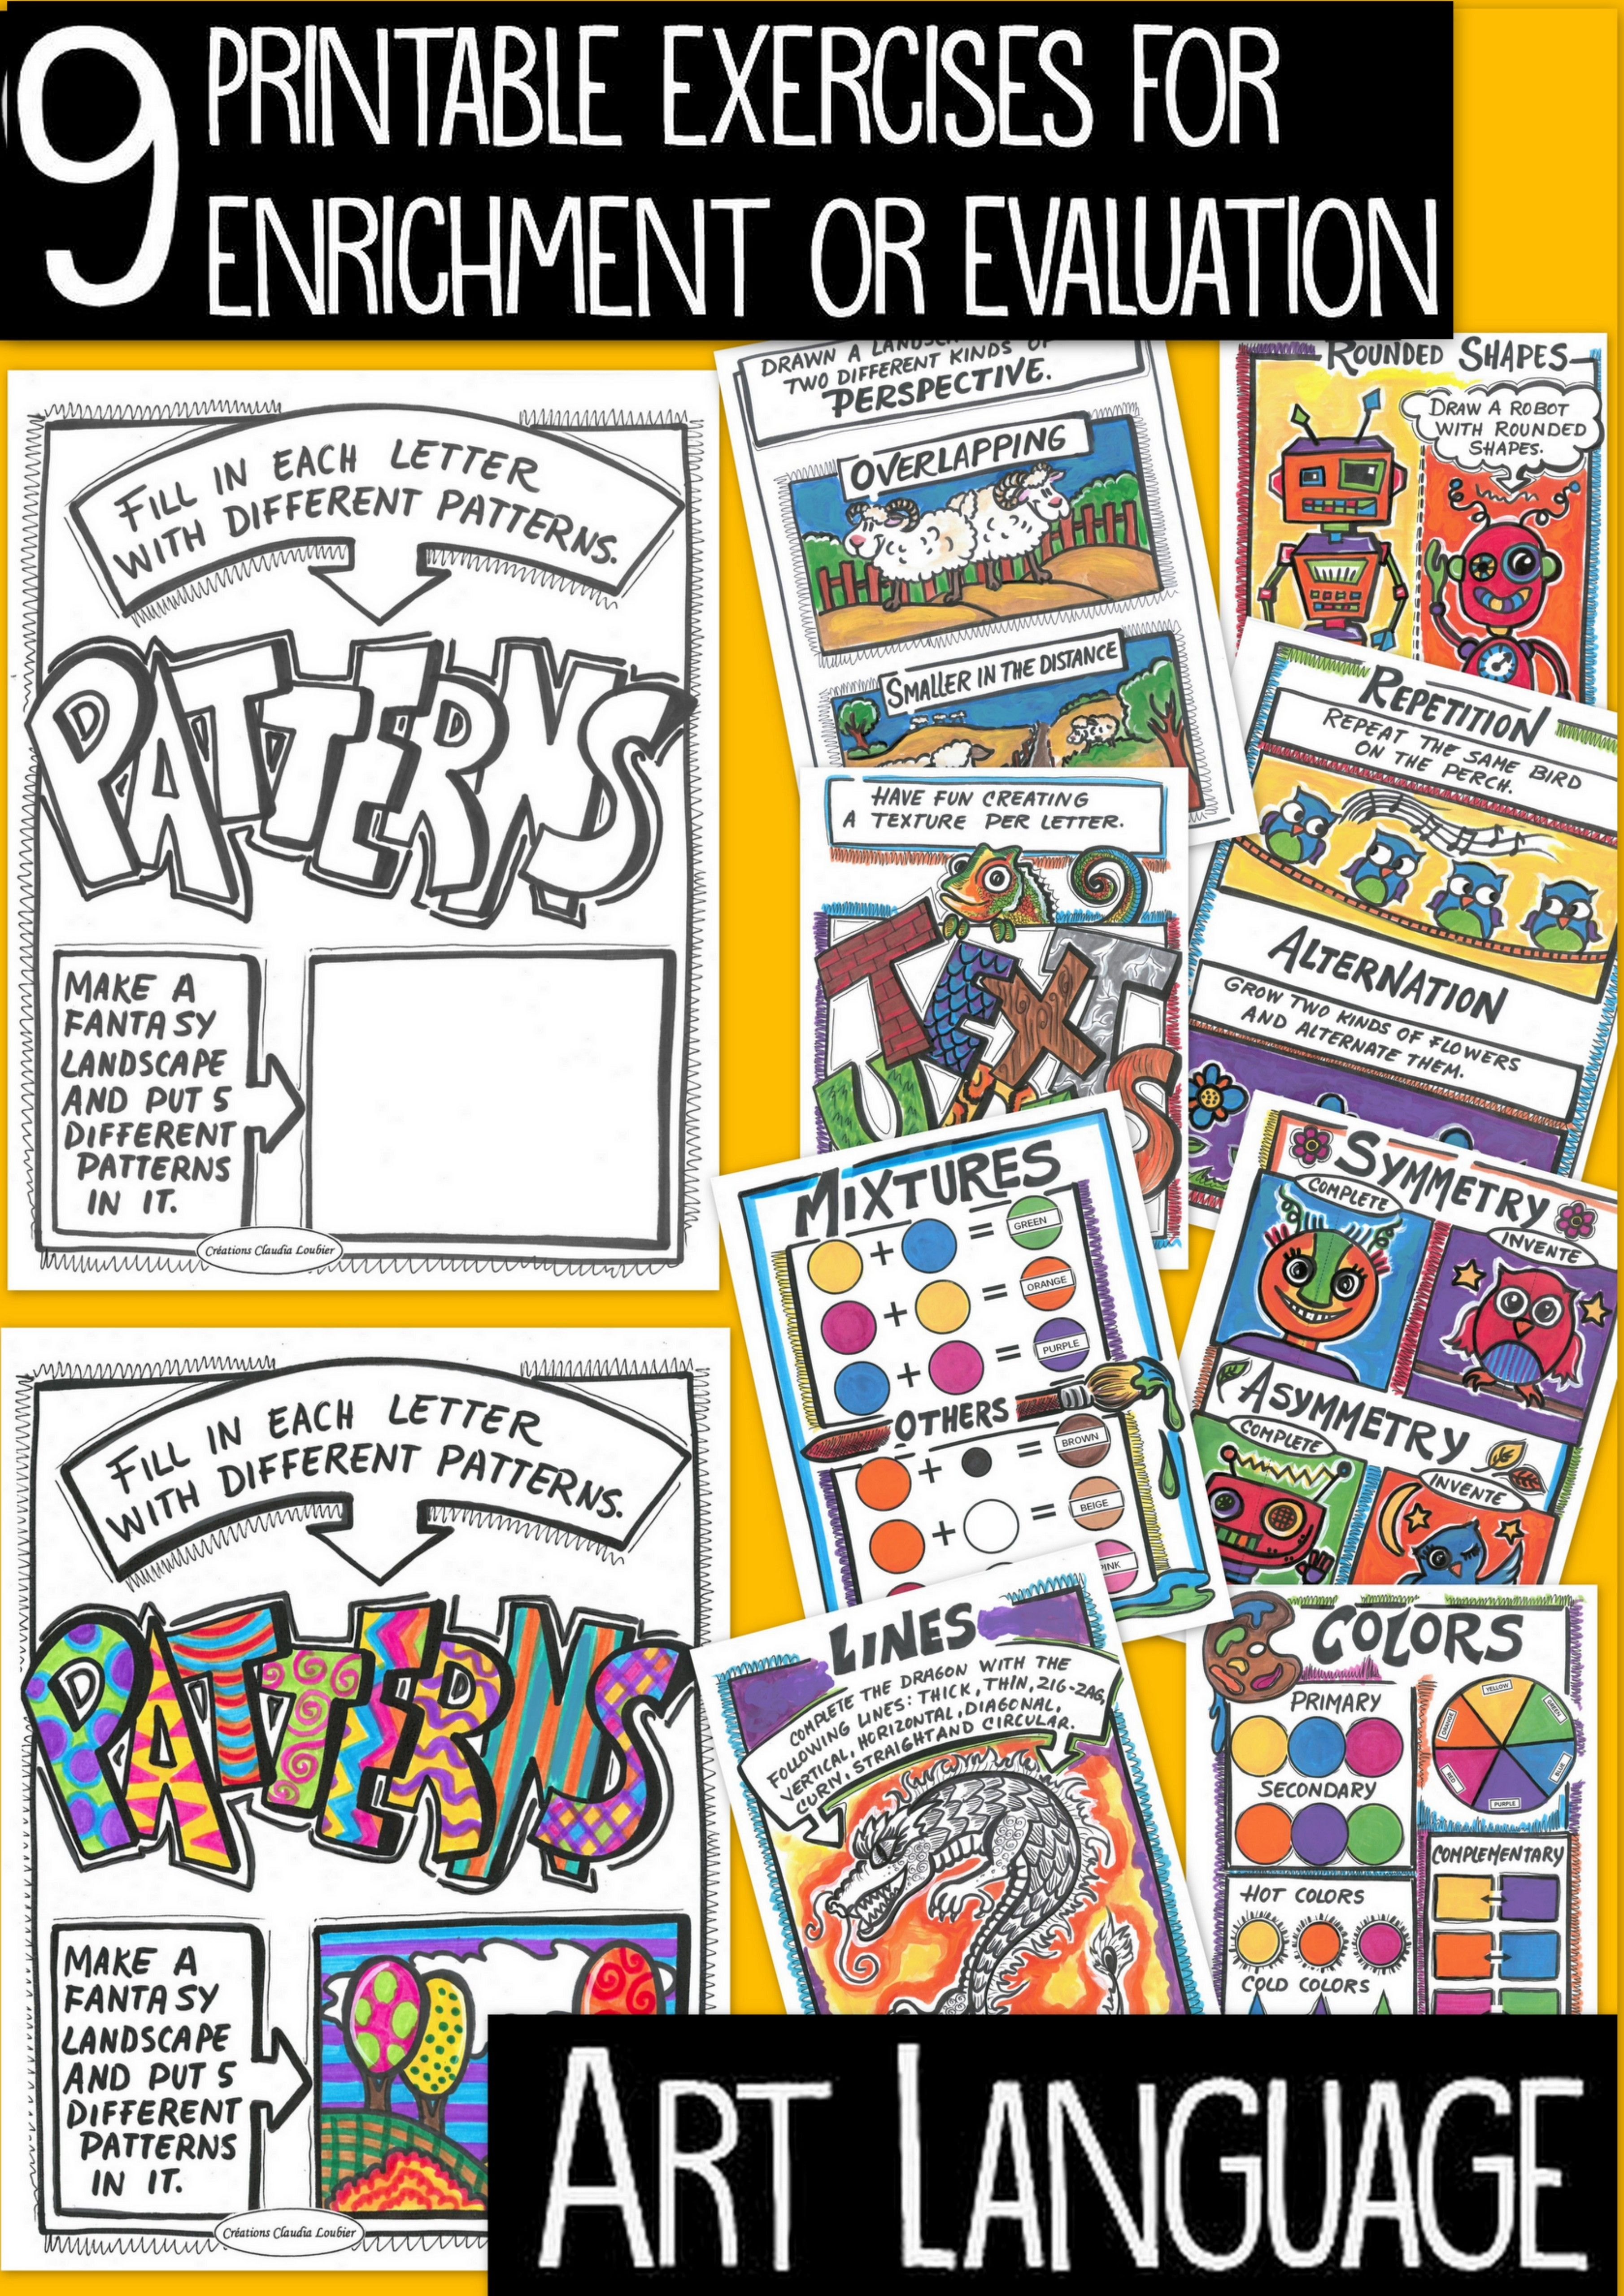 Here is a collection of 9 exercises, covering all of the ART language in primary school. 9 reproducible sheets for your students. Each of the sheets can help to teach the ART concepts. You can also use them for enrichment or evaluation. For each exercise, a coloured response-sheet is suggested. You courses will be complete and amusing.